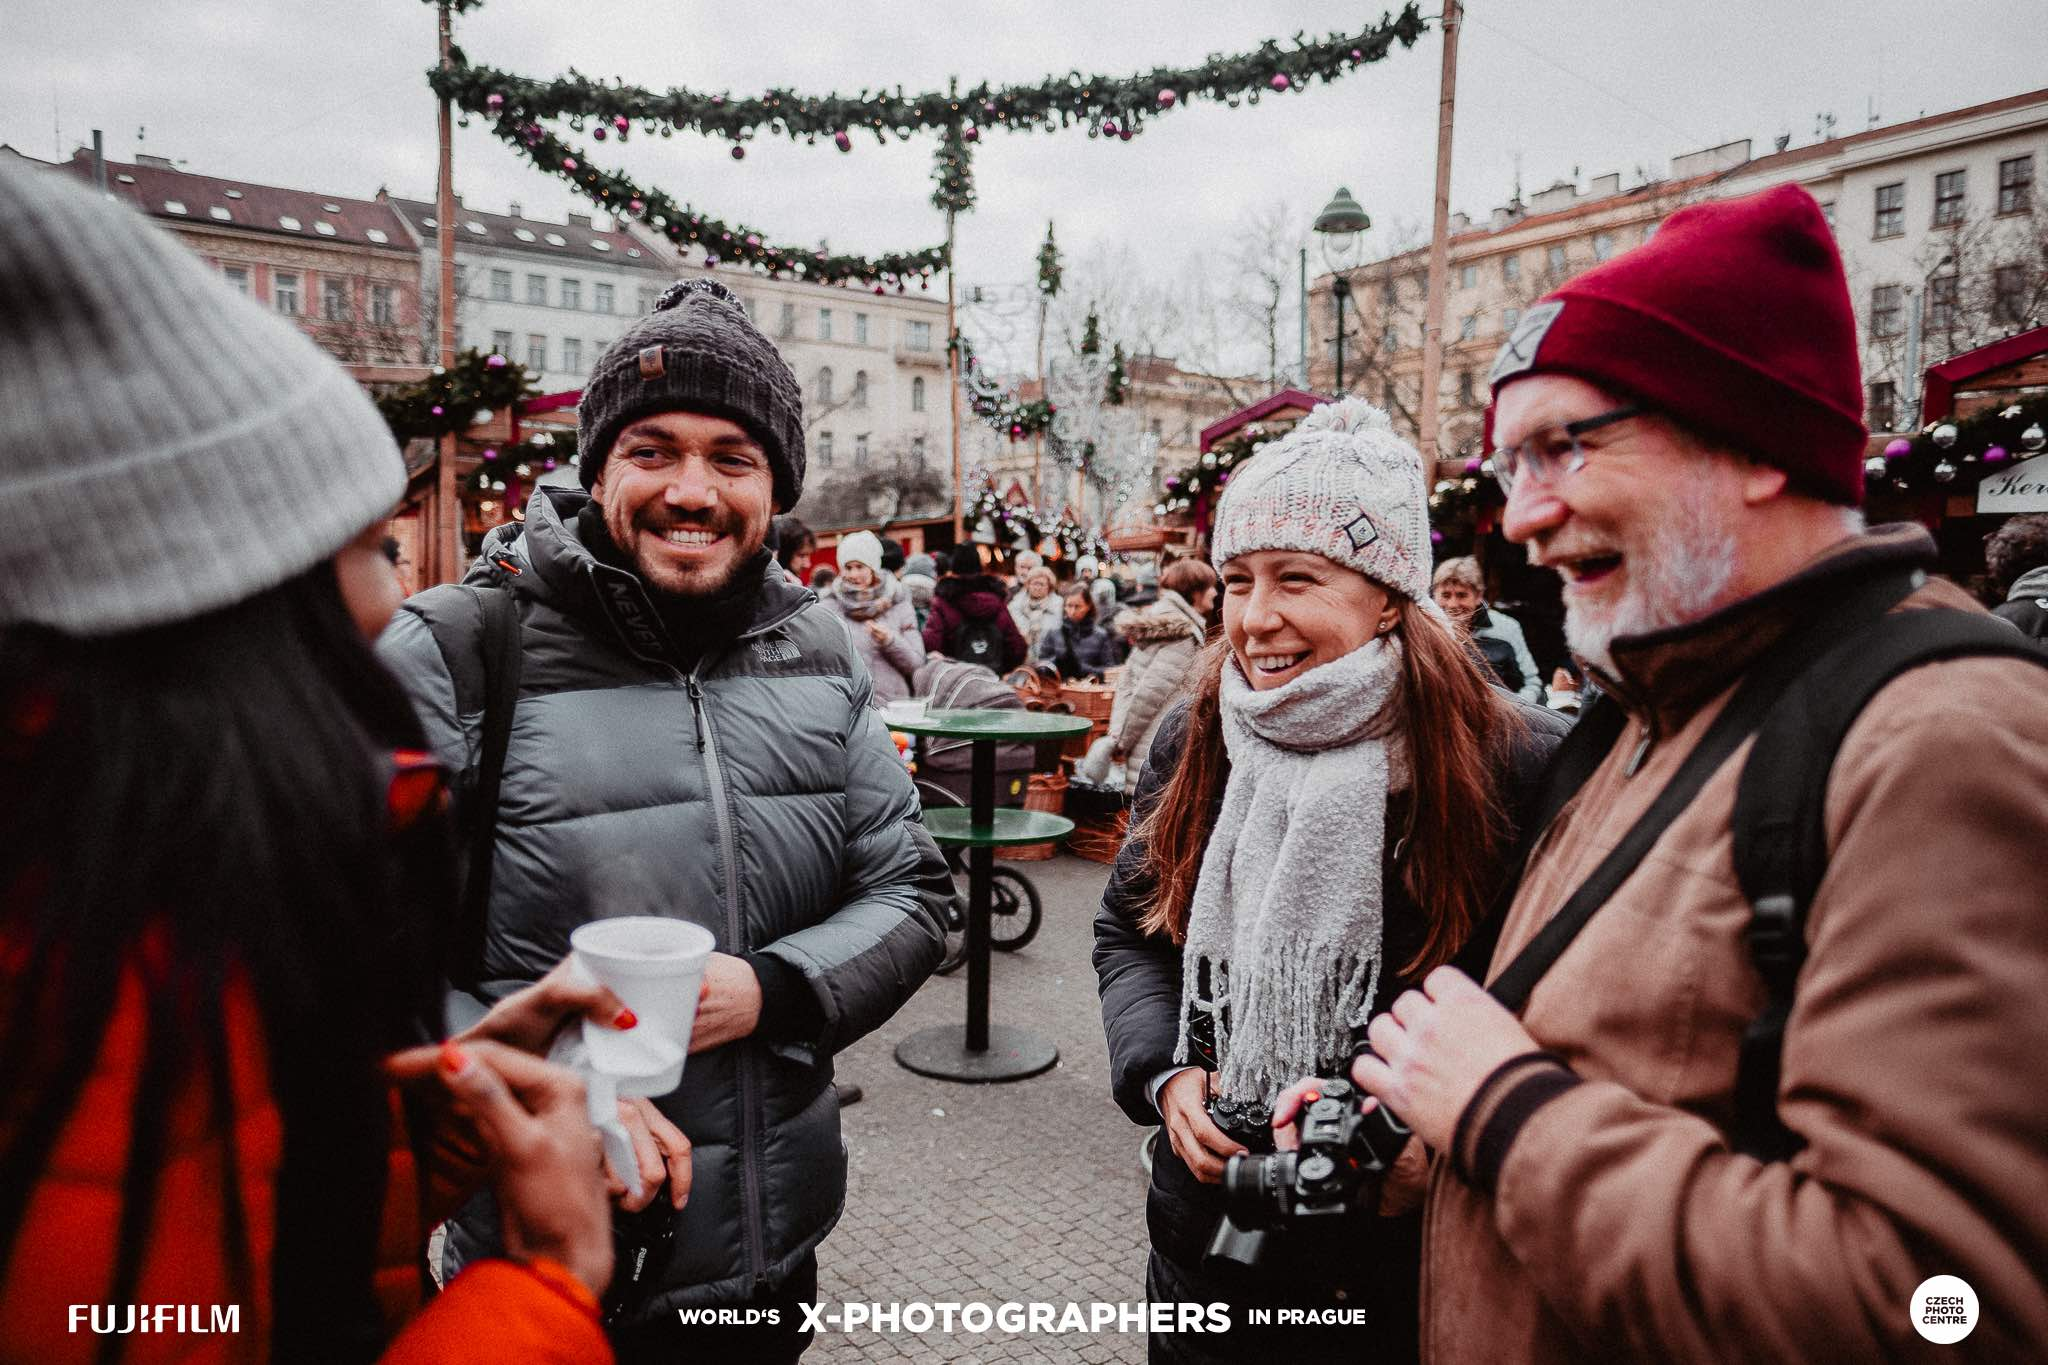 Street Photography Workshop with FUJIFILM CZ users in Prague